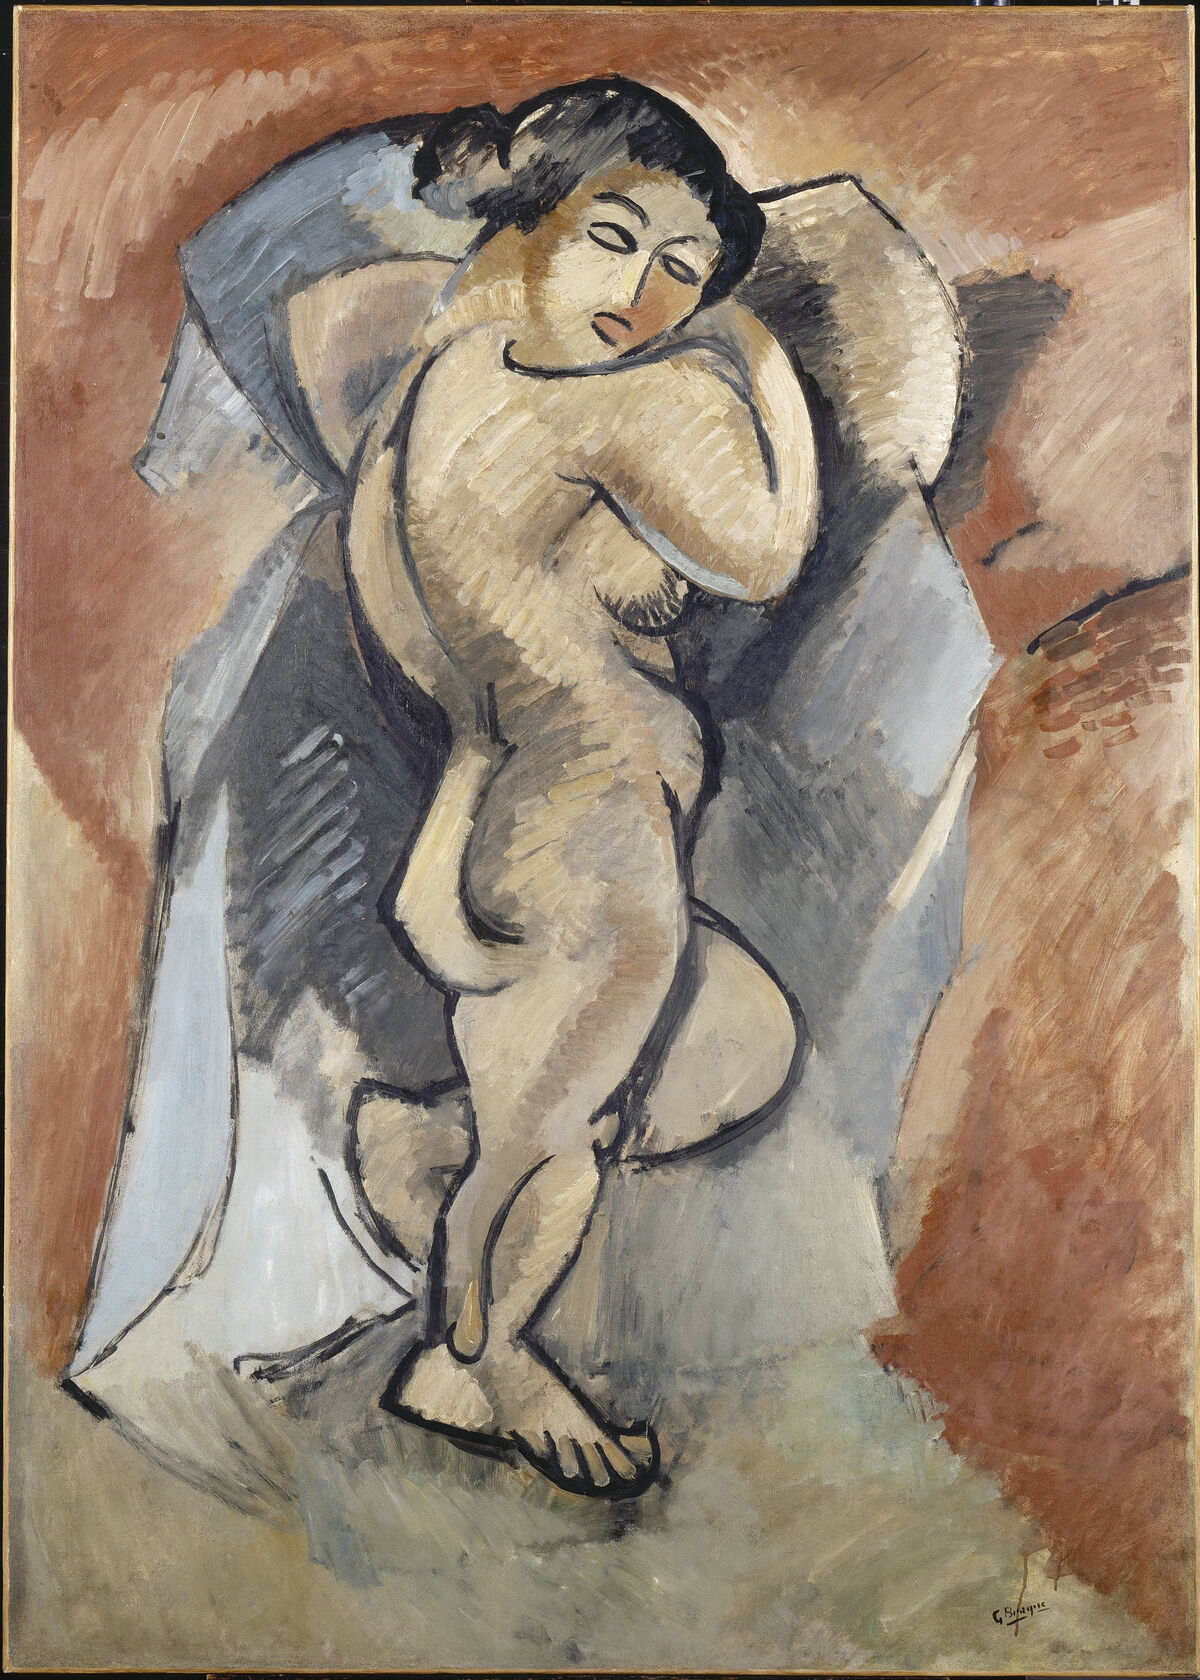 Georges Braque, Large Nude, 1908. © CNAC/MNAM/Dist. RMN-Grand Palais / Art Resource, NY. Courtesy of Simon & Schuster.